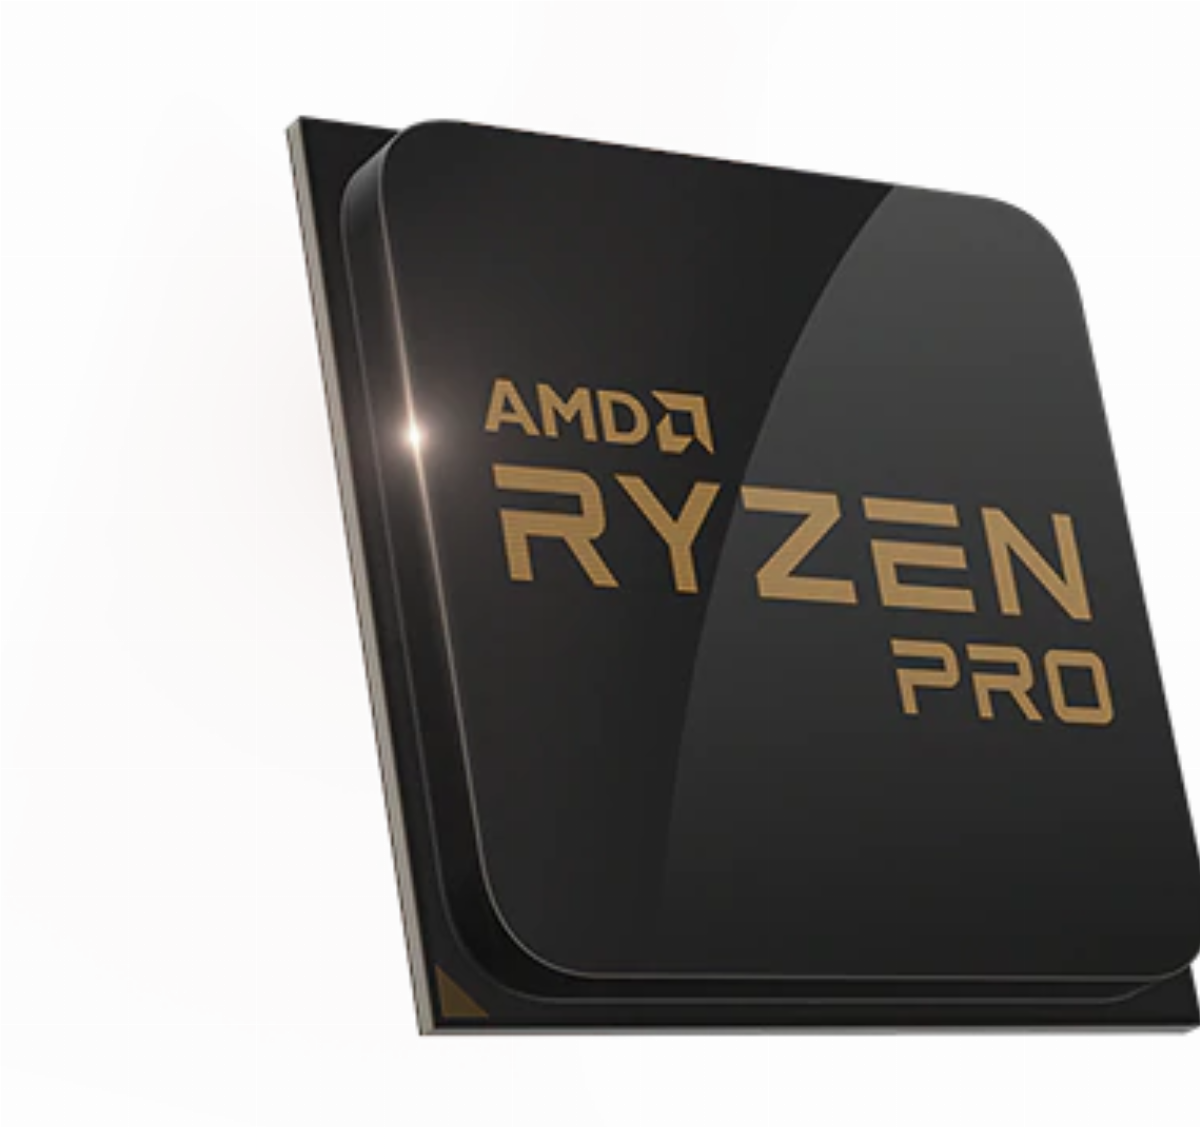 Процесор AMD Ryzen 5 PRO 1600, 6-Core, 3.2 GHz Up to 3.6GHz, TRAY